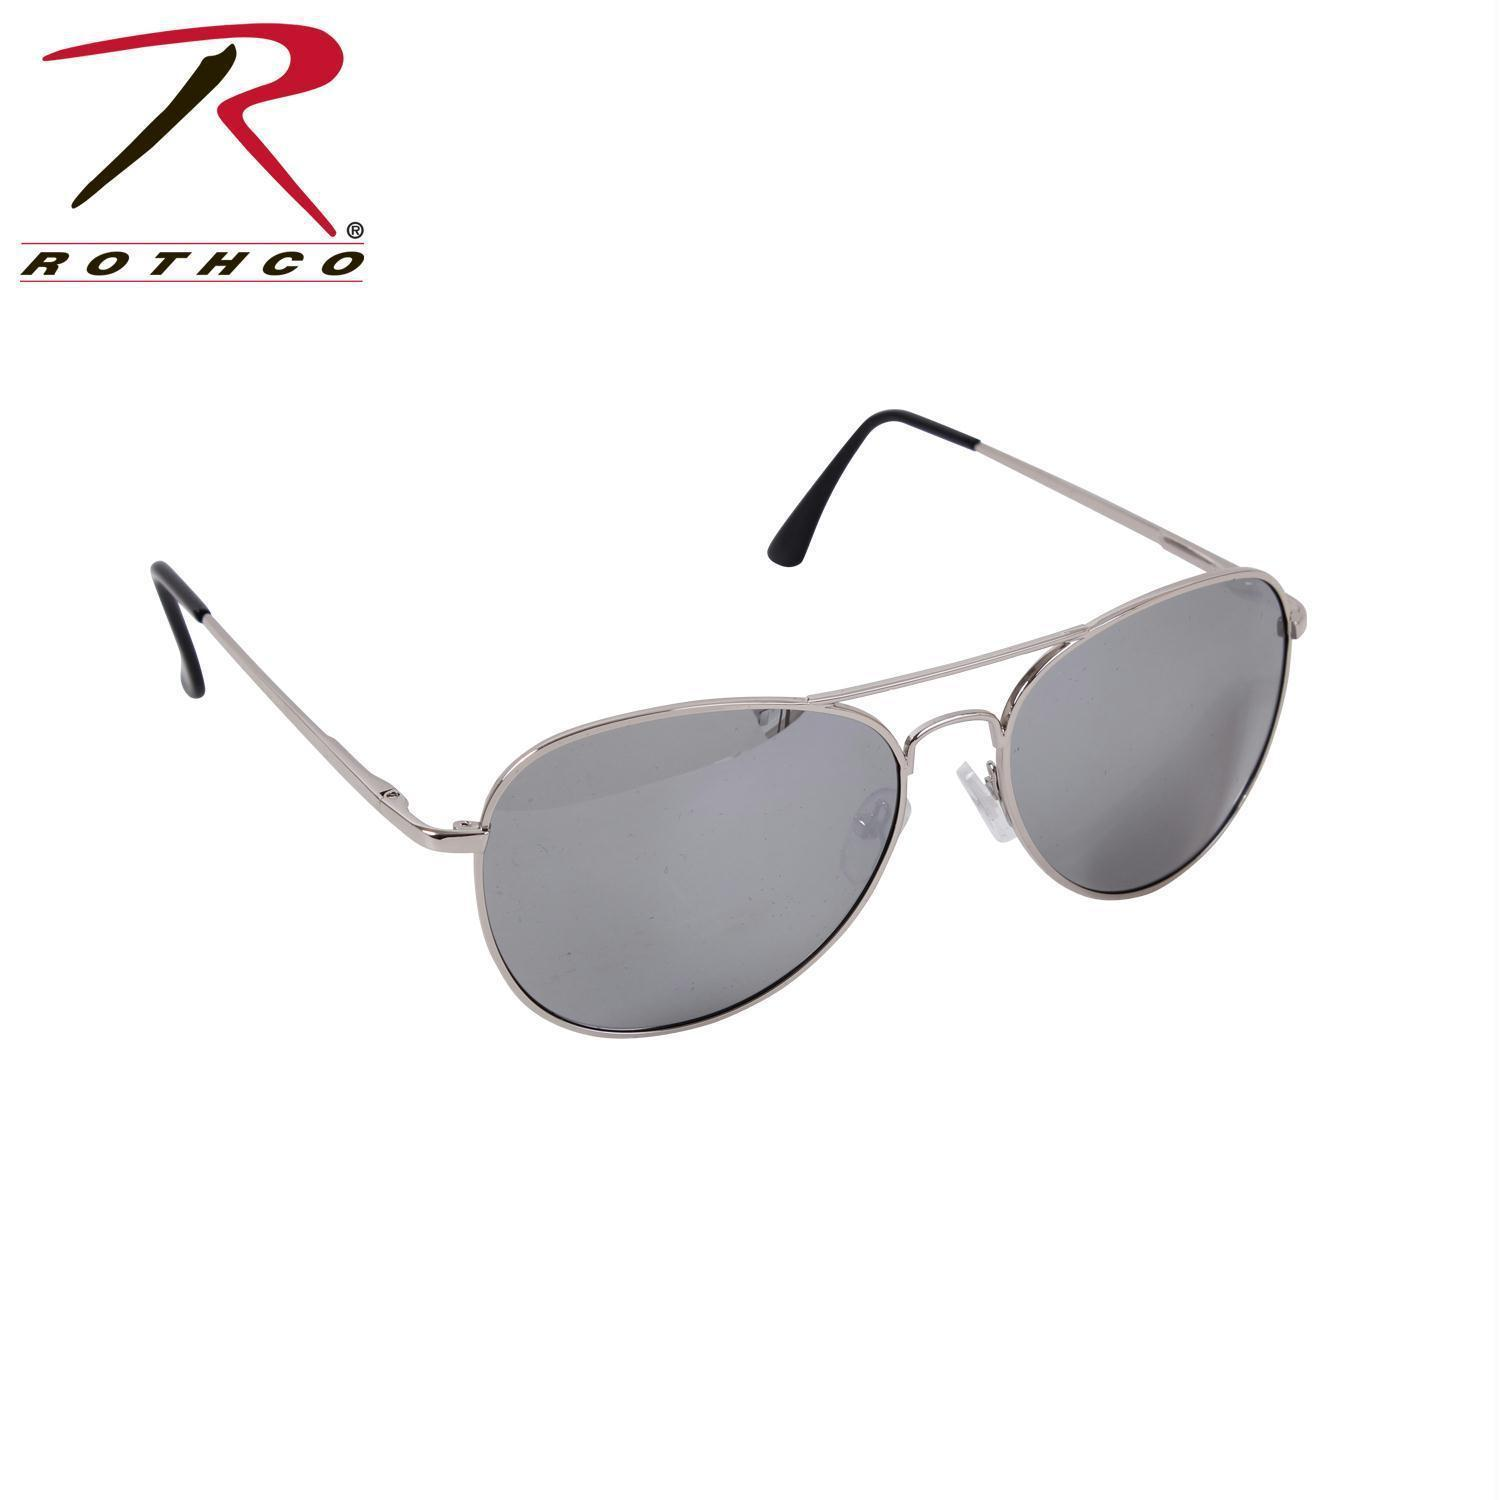 Rothco 58mm Polarized Sunglasses